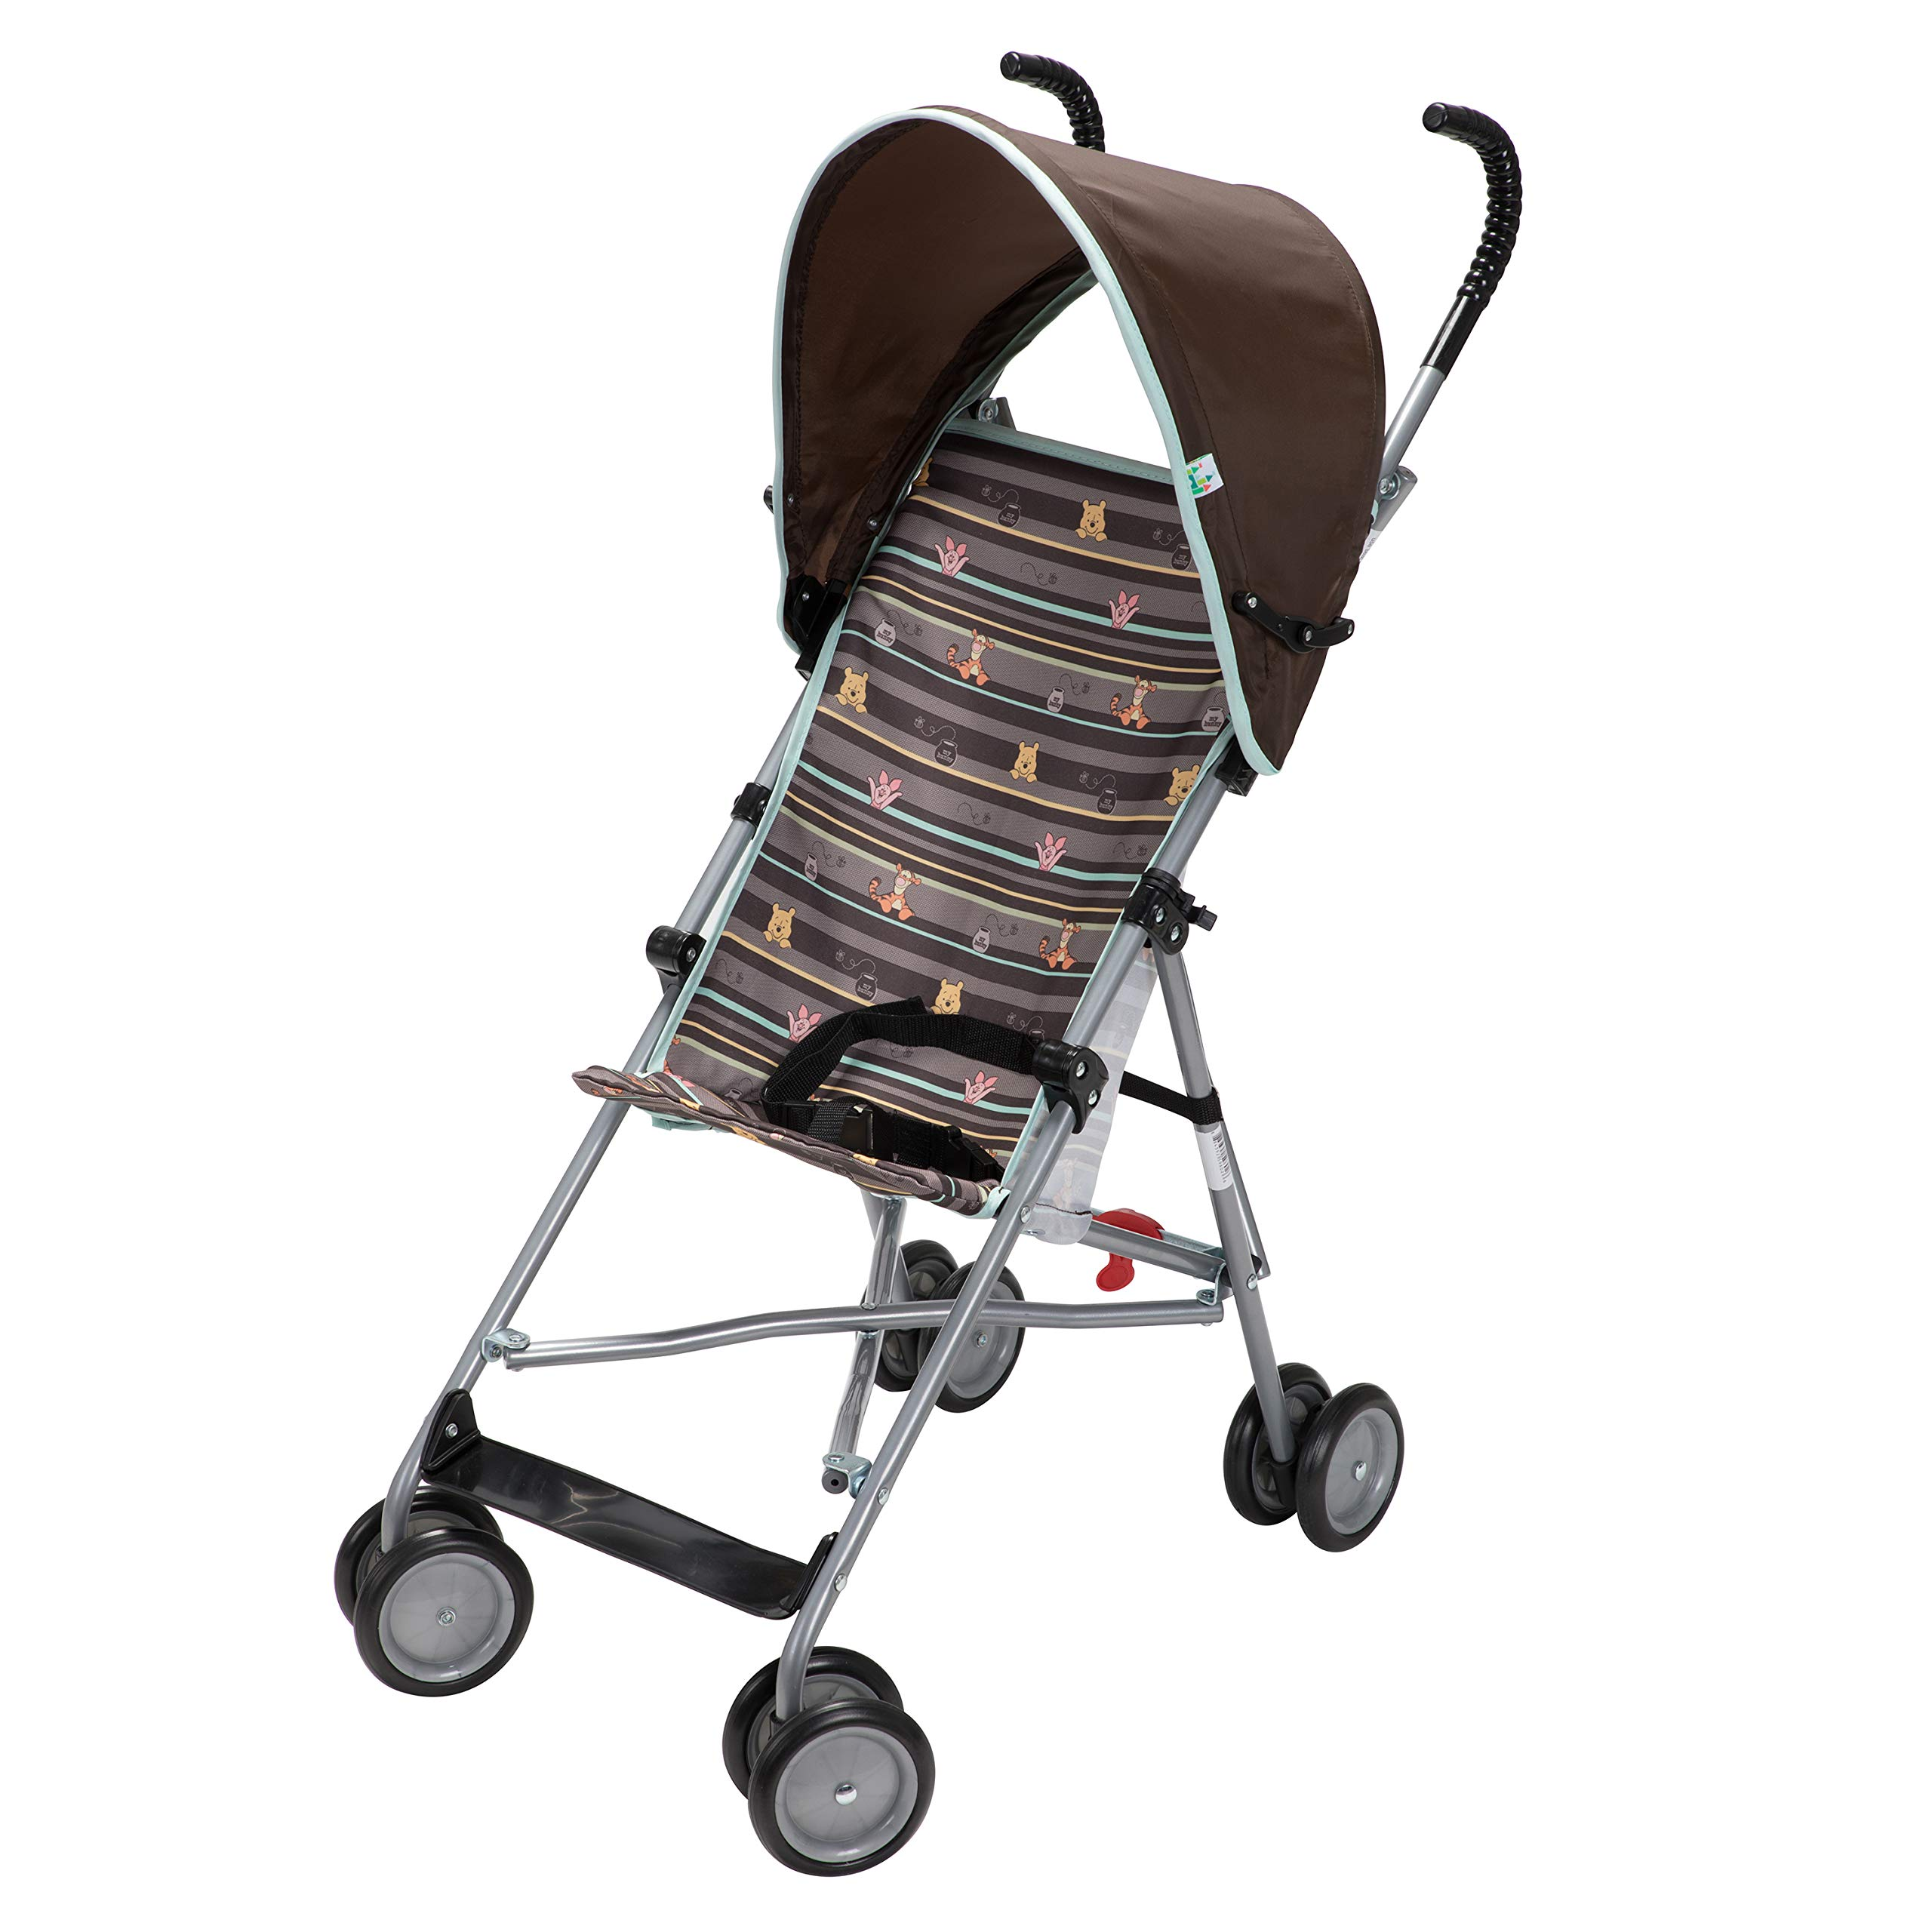 Disney Baby Winnie-the-Pooh Umbrella Stroller with Canopy (My Hunny Stripes) by Disney (Image #6)